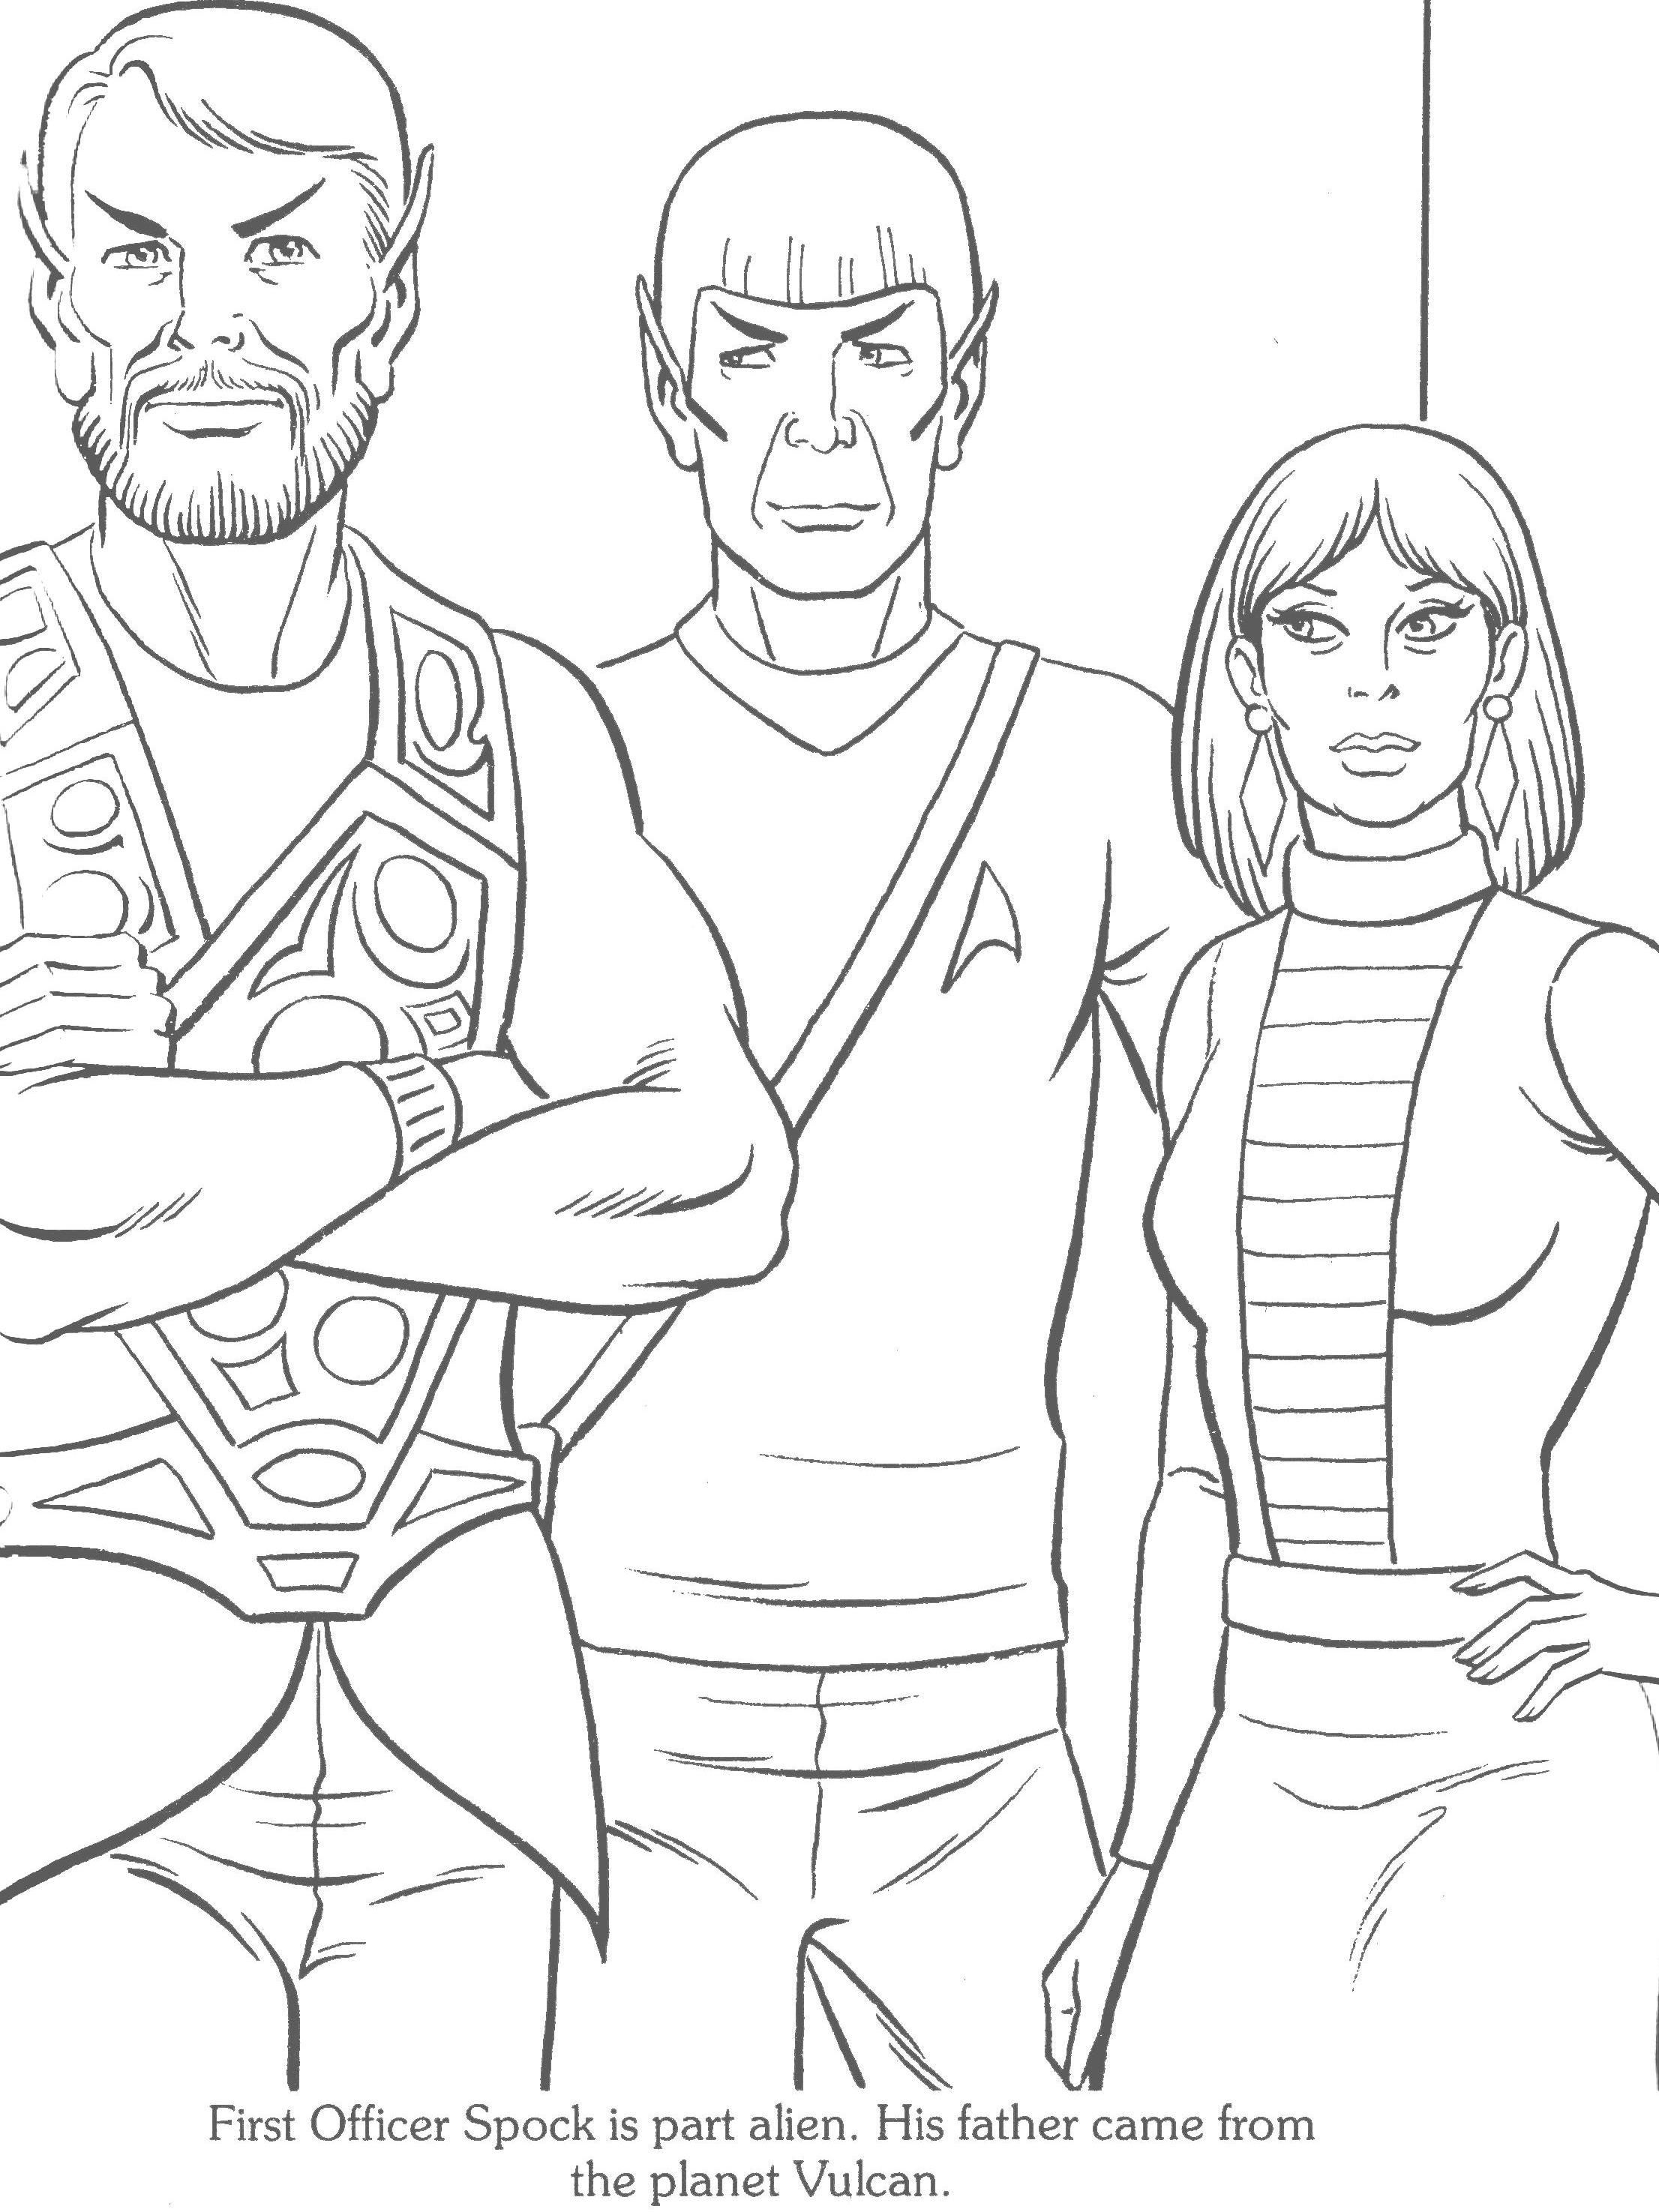 Staying Inside The Star Trek Coloring Book Lines Coloring Books